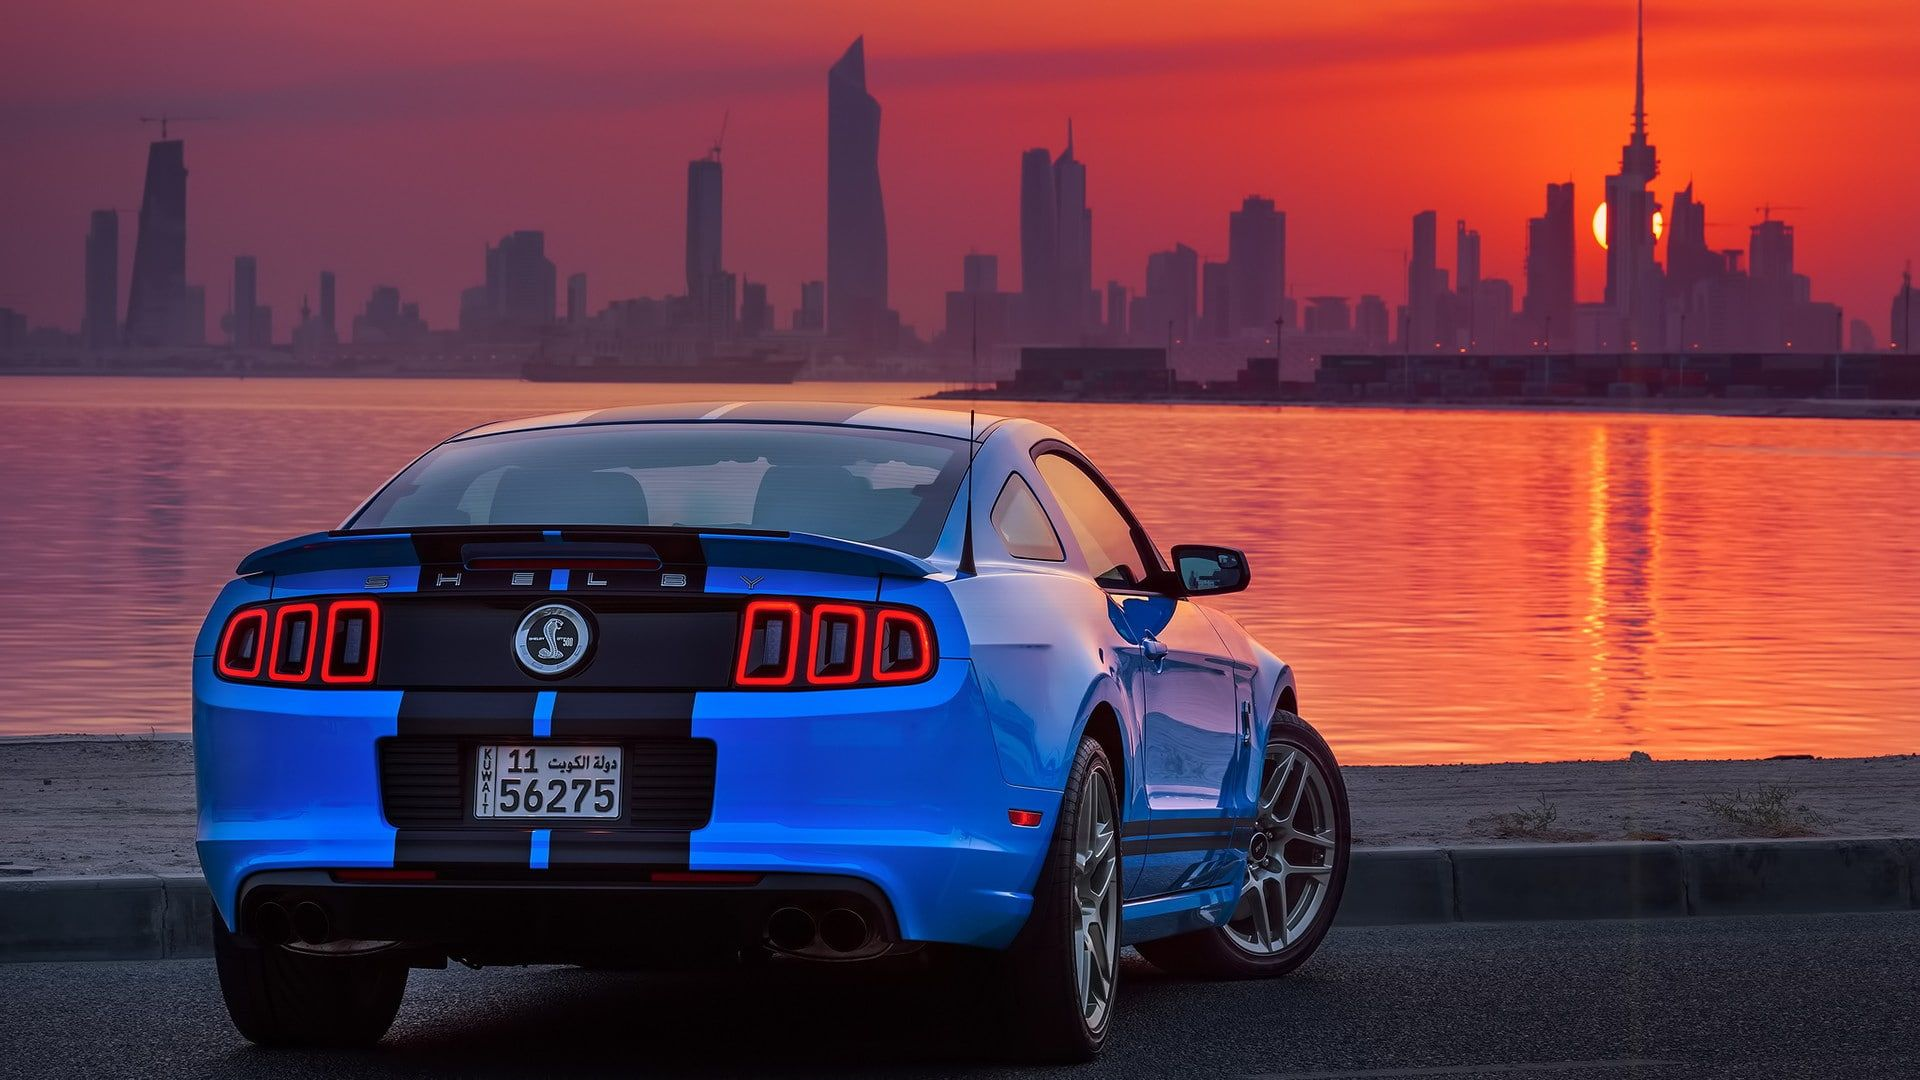 Shelby Gt500 Ford Usa Car Ford Mustang Shelby Kuwait Blue Cars